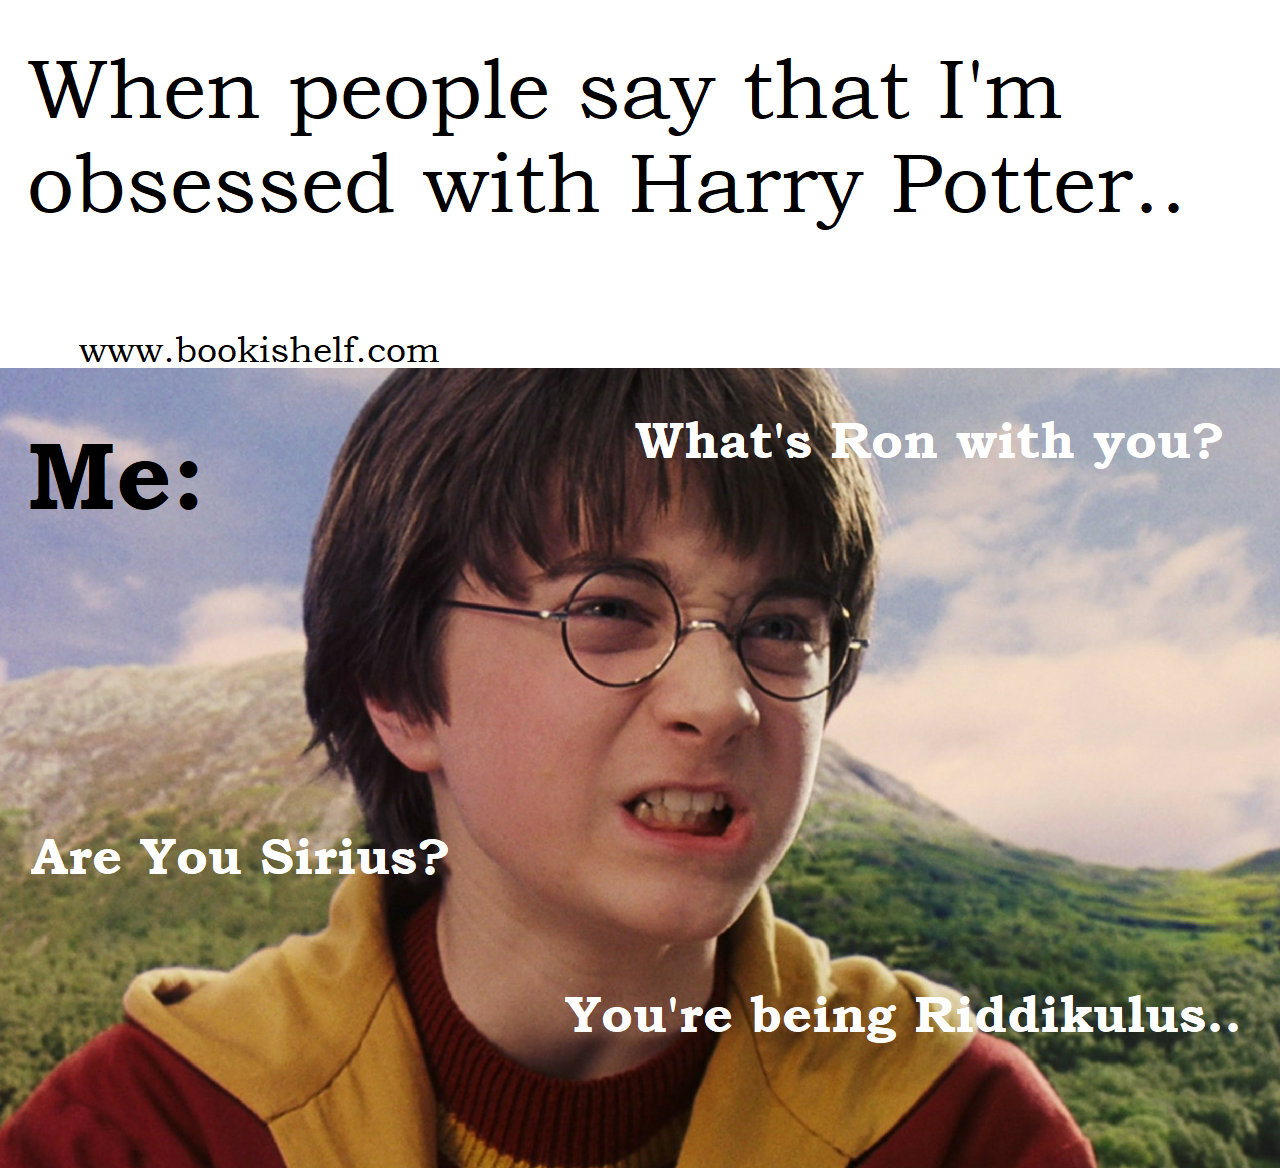 How Much You Like The Harry Potter Series I M Asking About Books Not Movies Read Books R Harry Potter Interviews Harry James Potter Harry Potter Jk Rowling